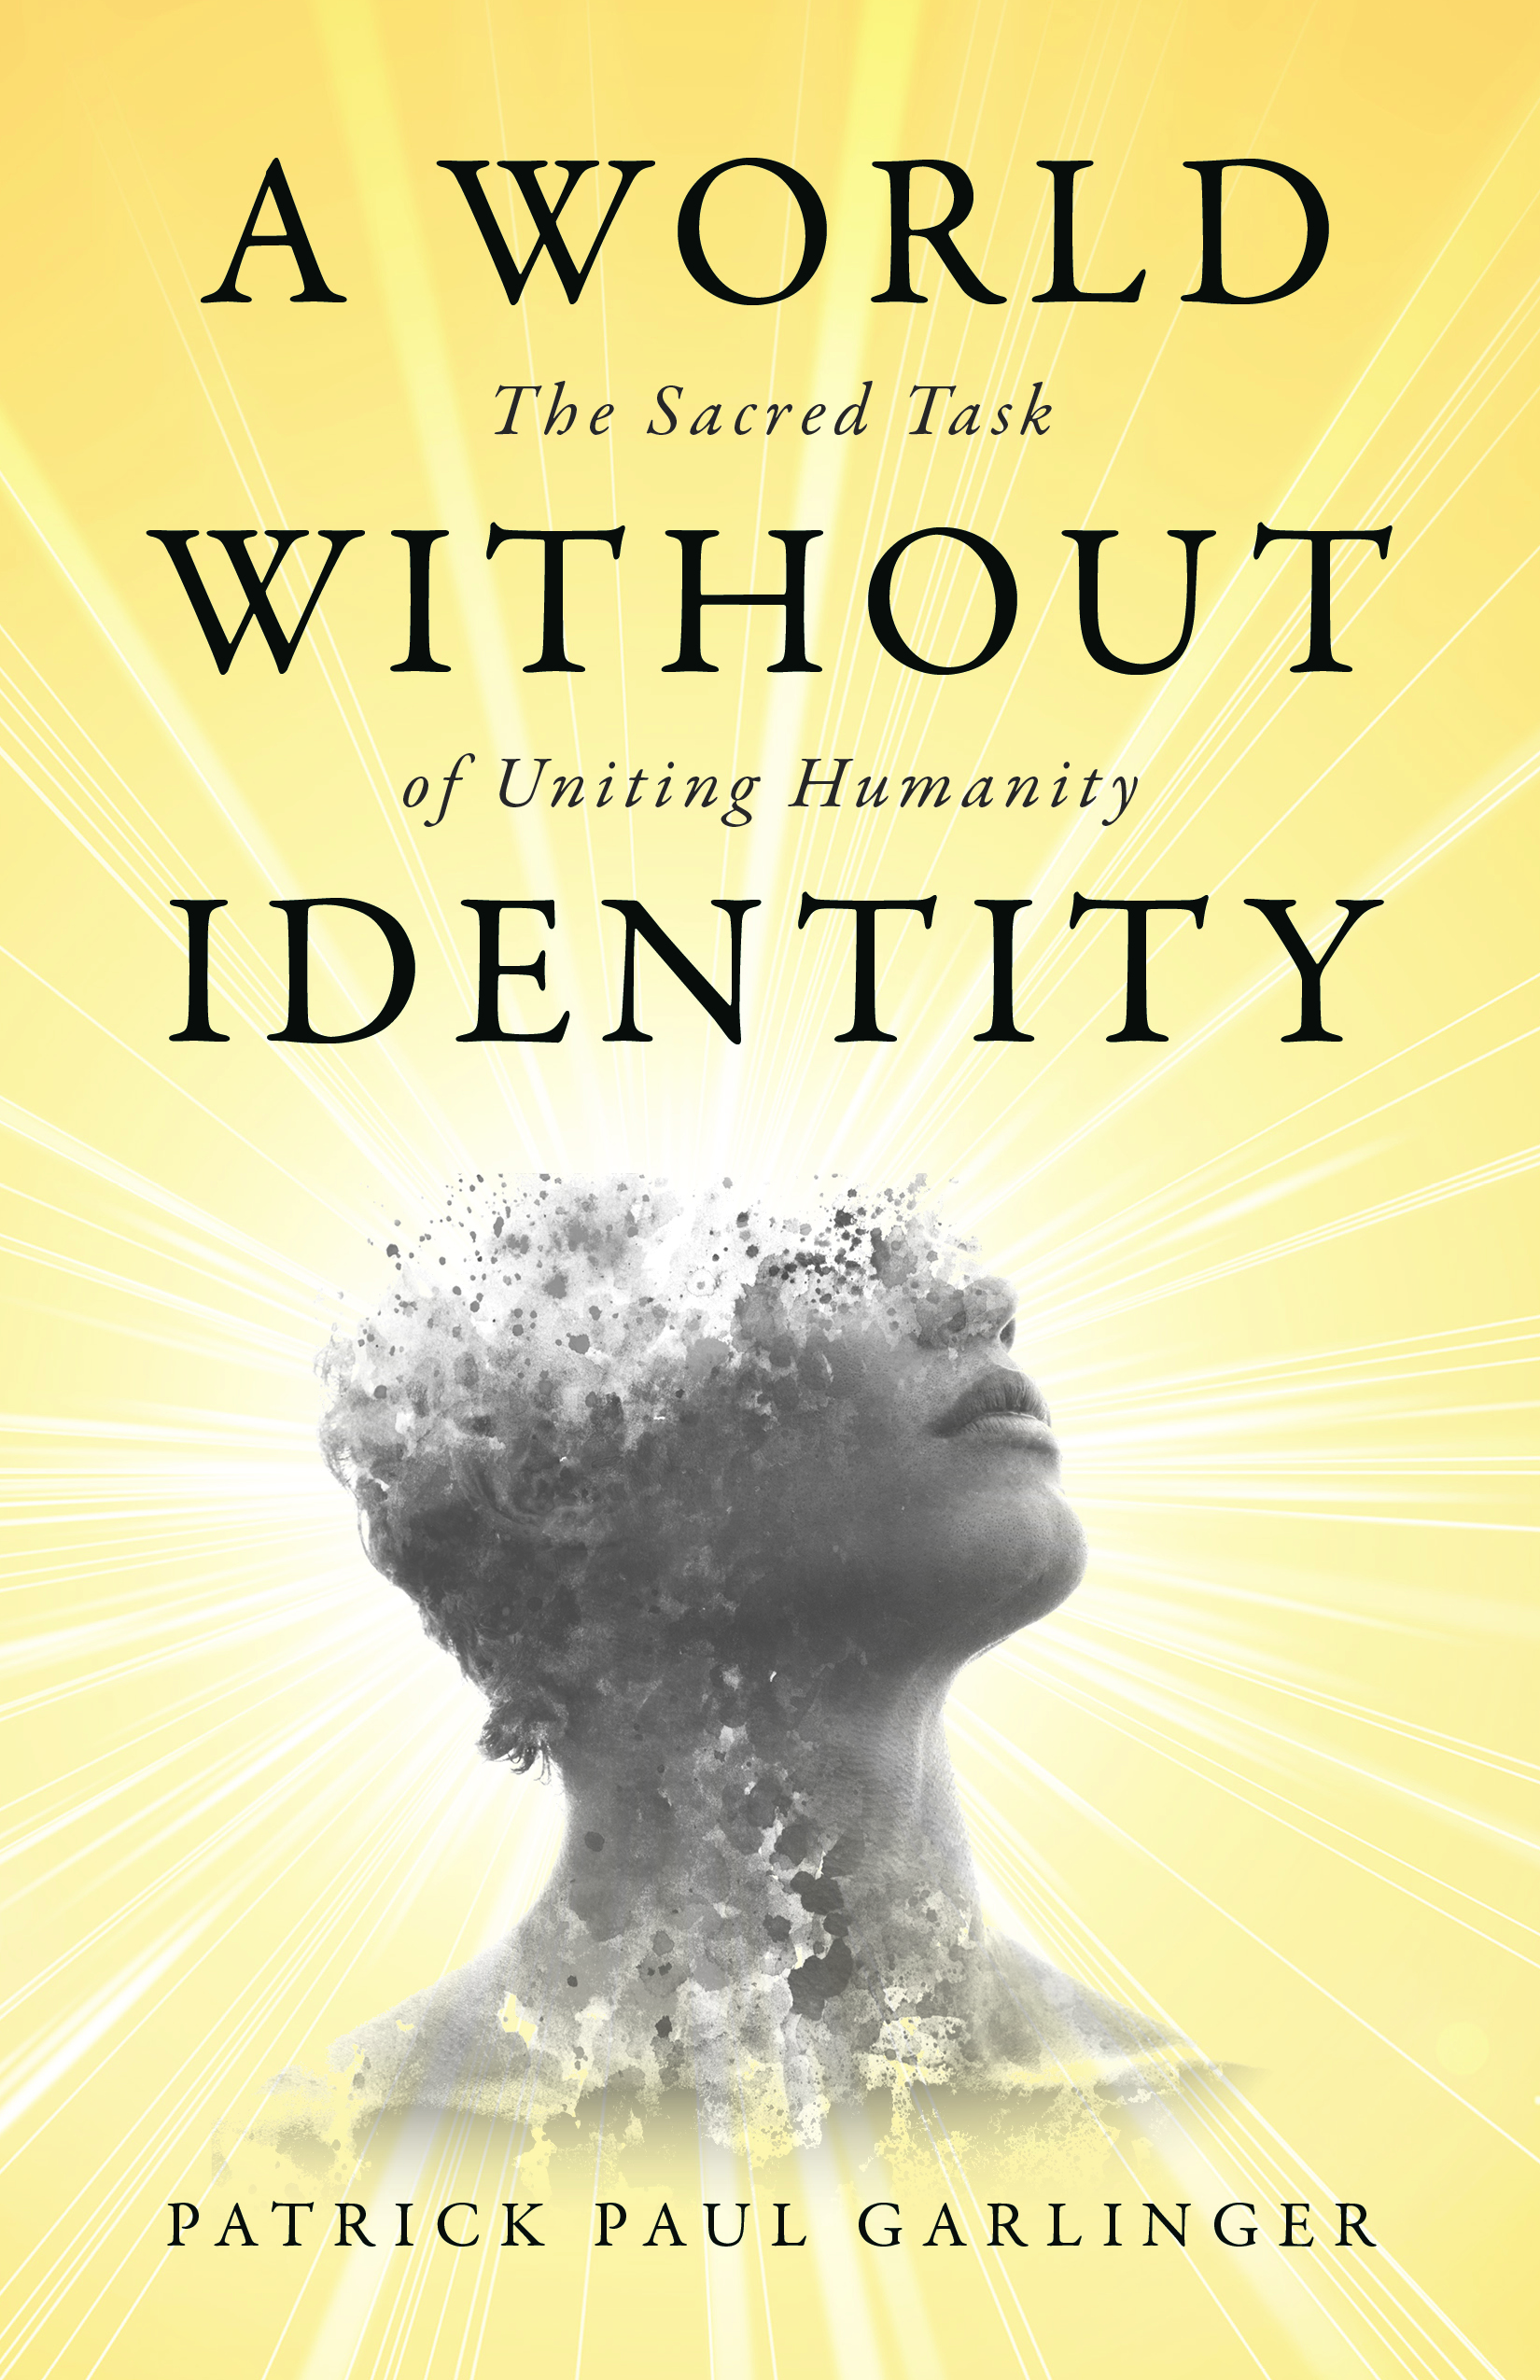 A World Without Identity: The Sacred Task of Uniting Humanity